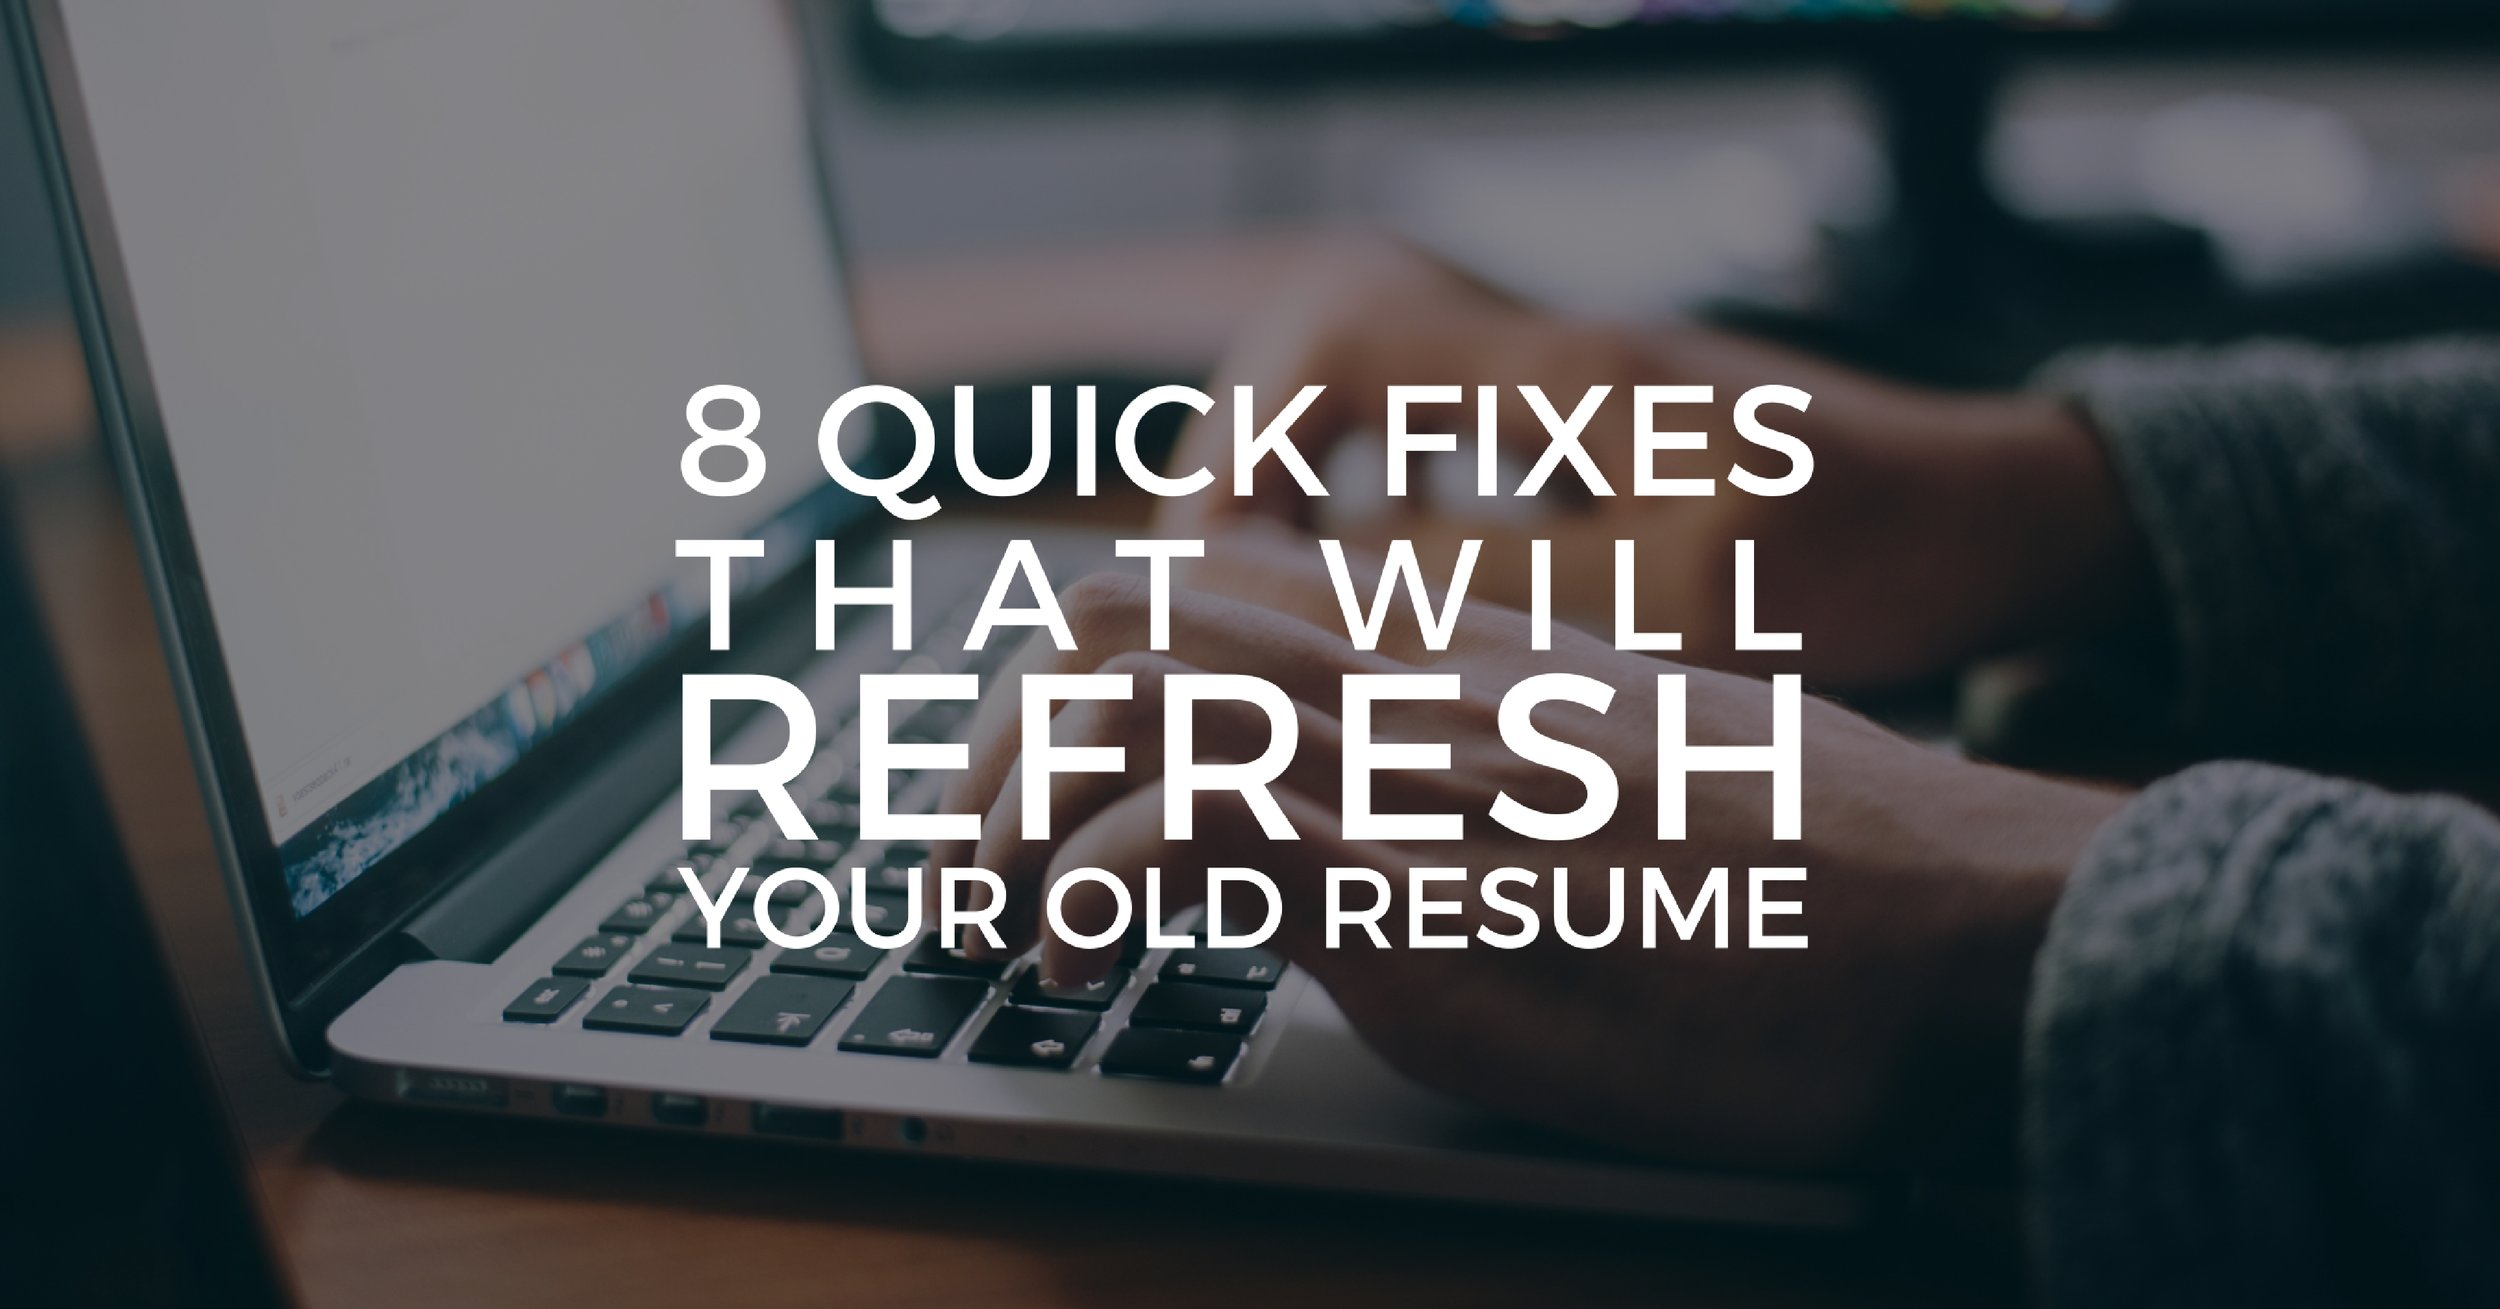 8 Quick Fixes That Will Refresh Your Old Resume